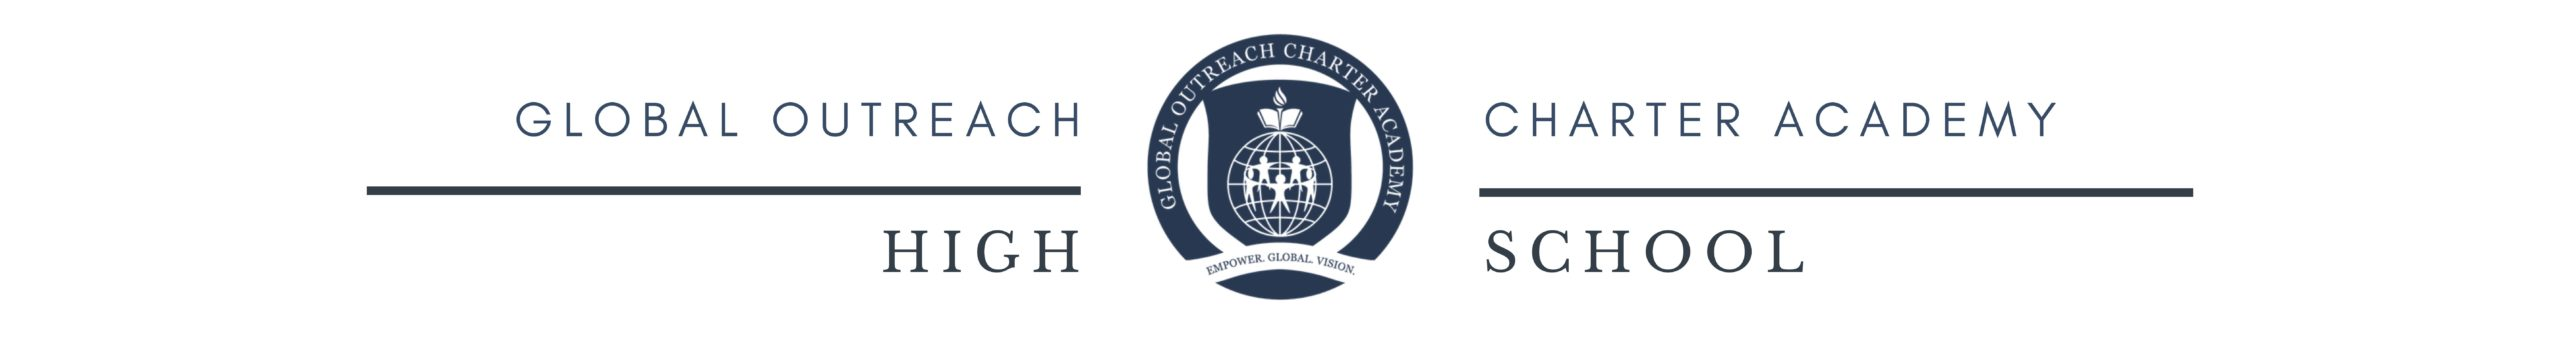 Global Outreach Charter Academy